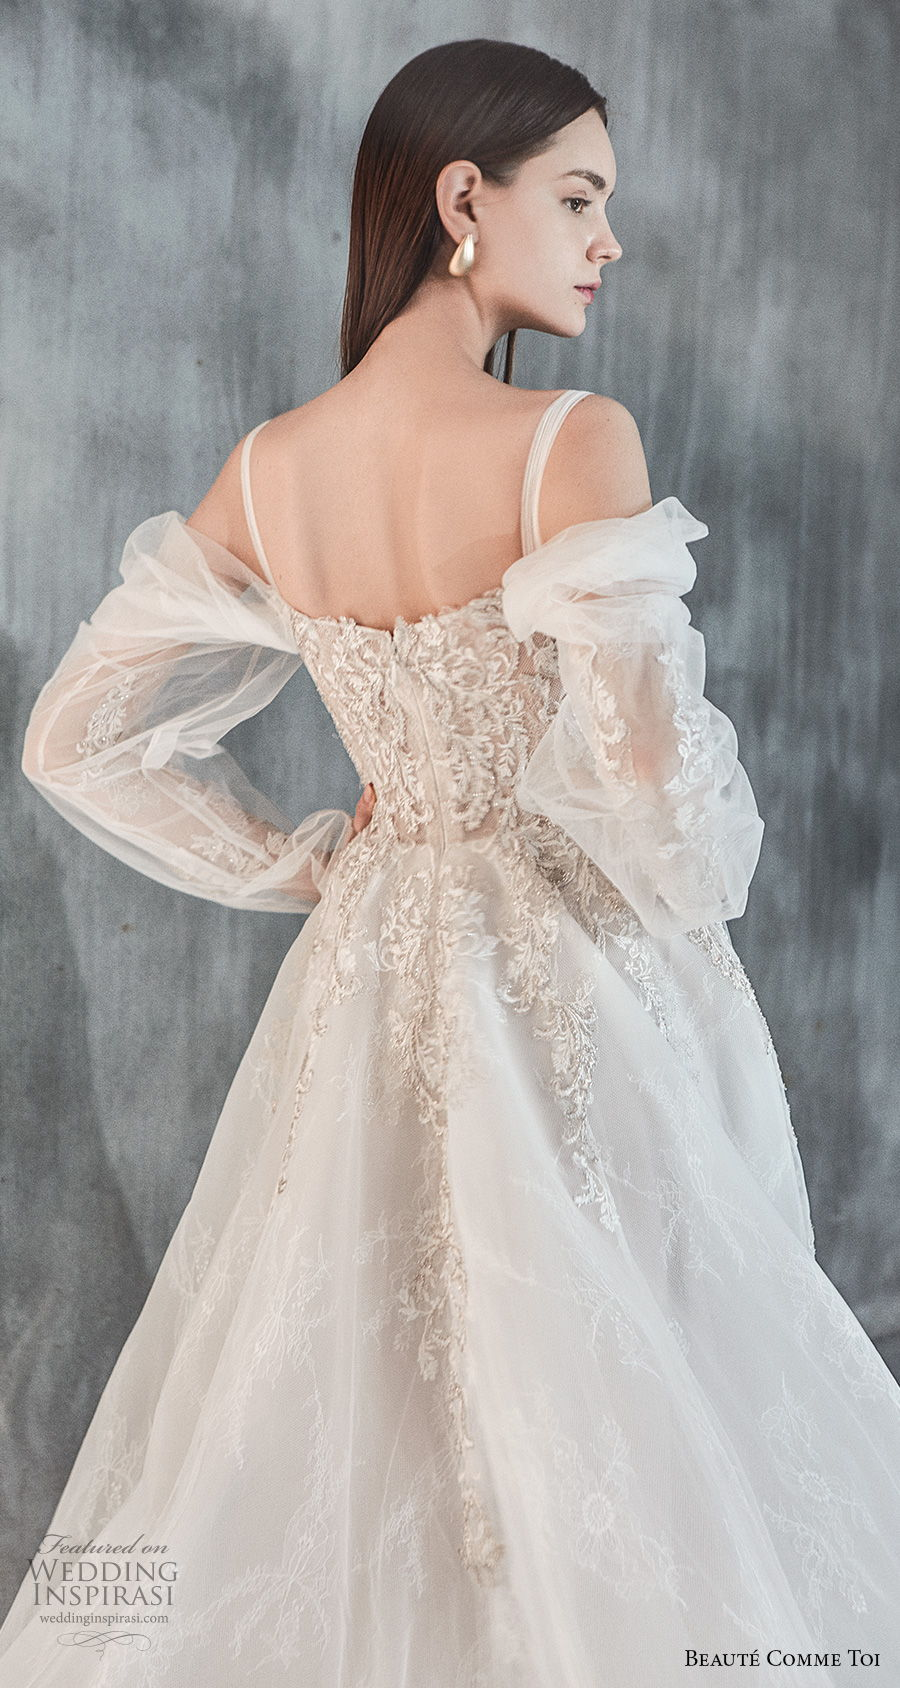 beaute comme toi 2021 bridal long sleeves cold shoulder with strap straight across neckline heavily embellished bodice princess a  line wedding dress mid back chapel train (eloise) zbv